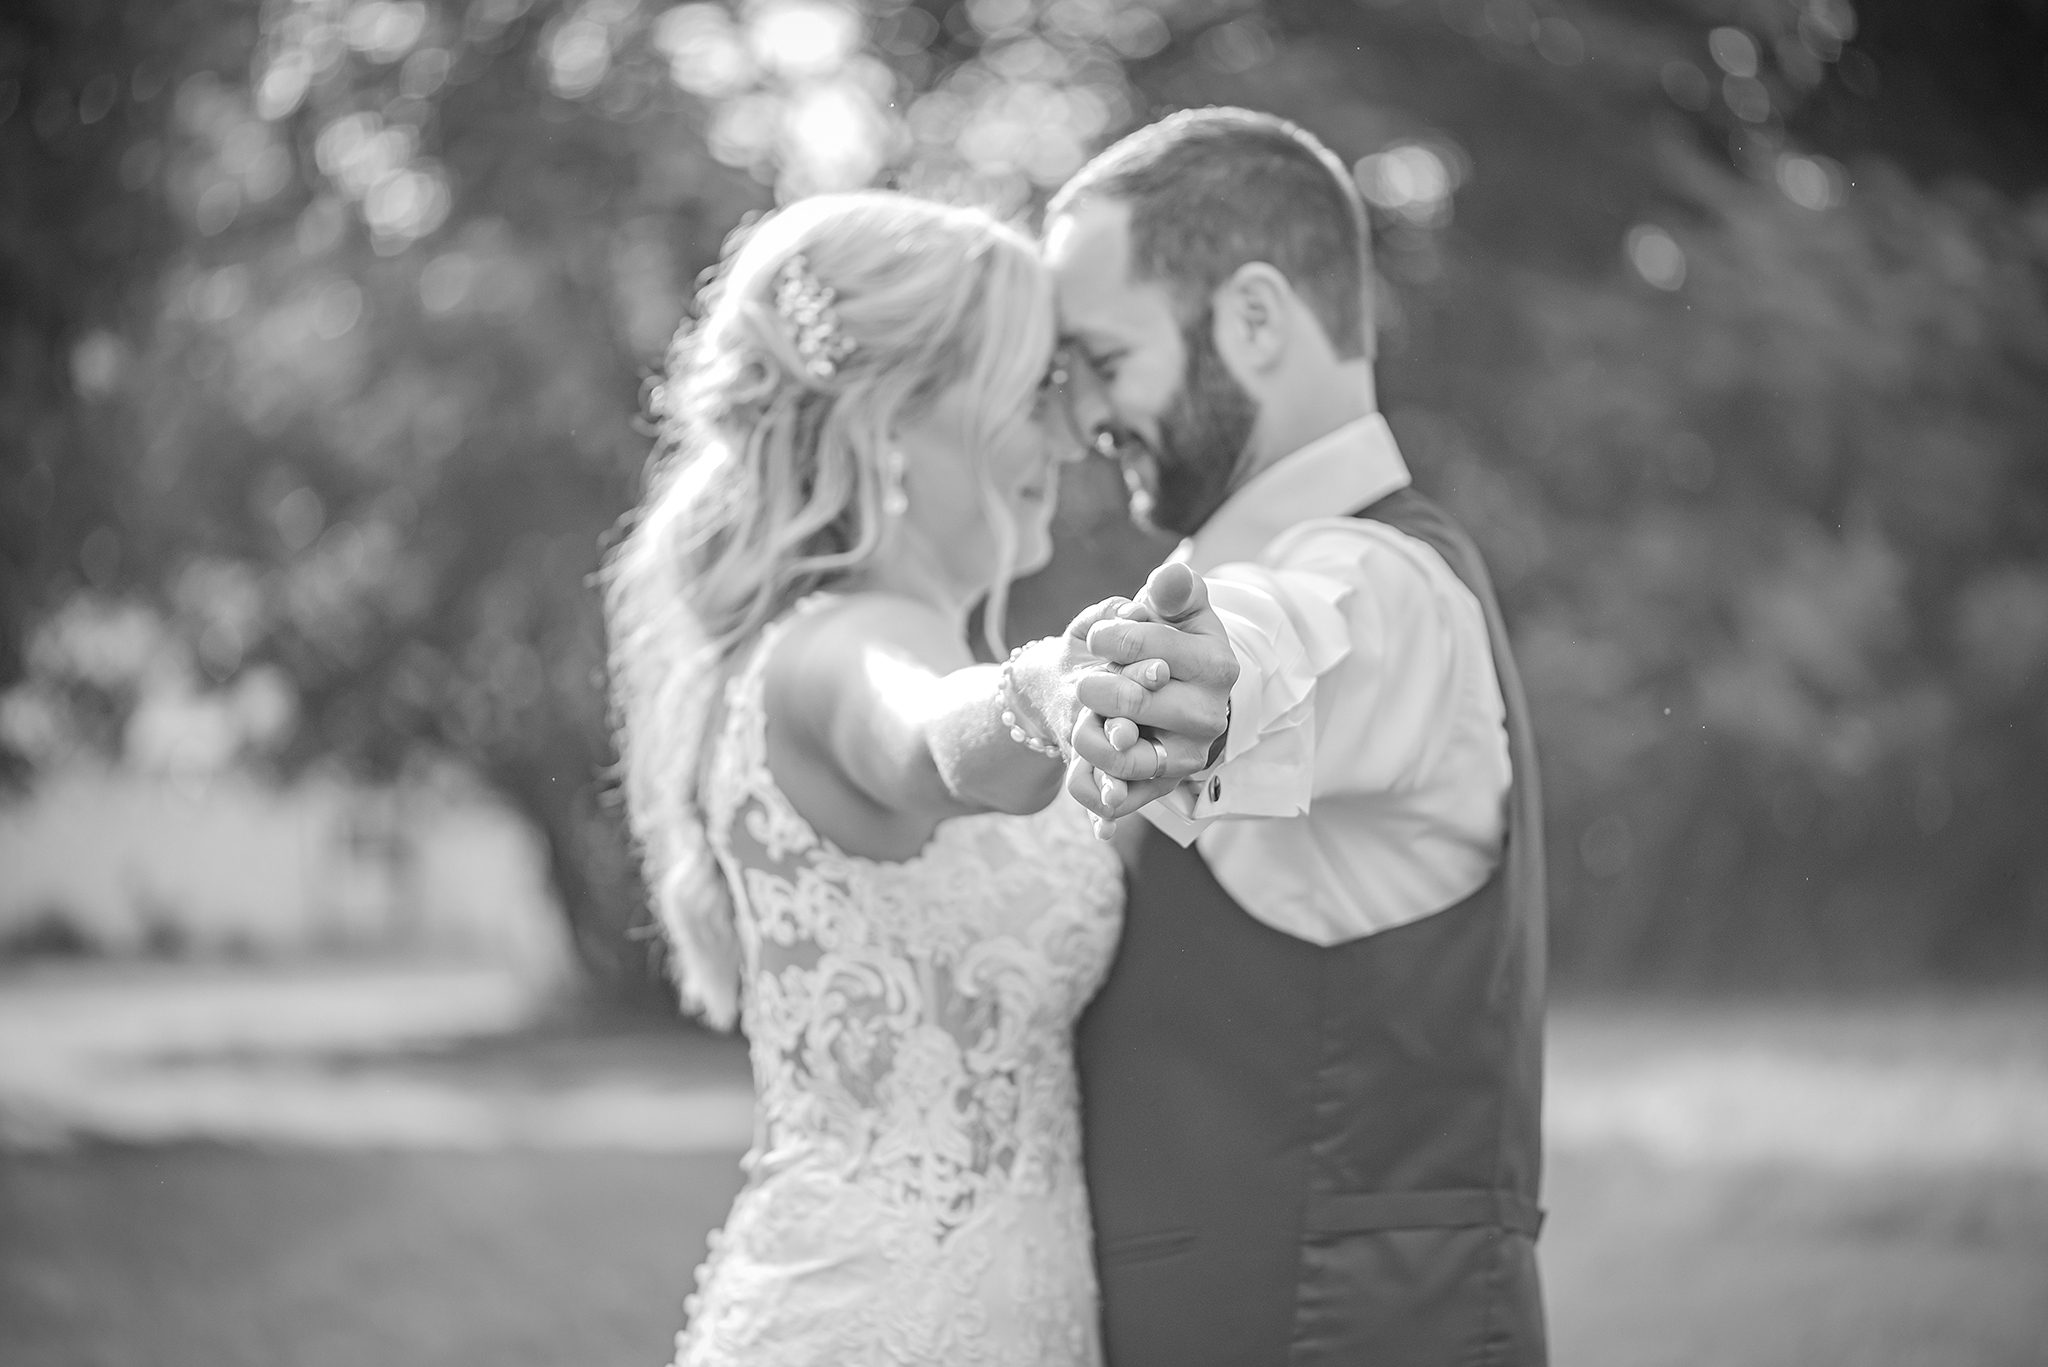 Lindsay-Adkins-Photography-Michigan-Wedding-Photographer-Tecumseh-Michigan-37